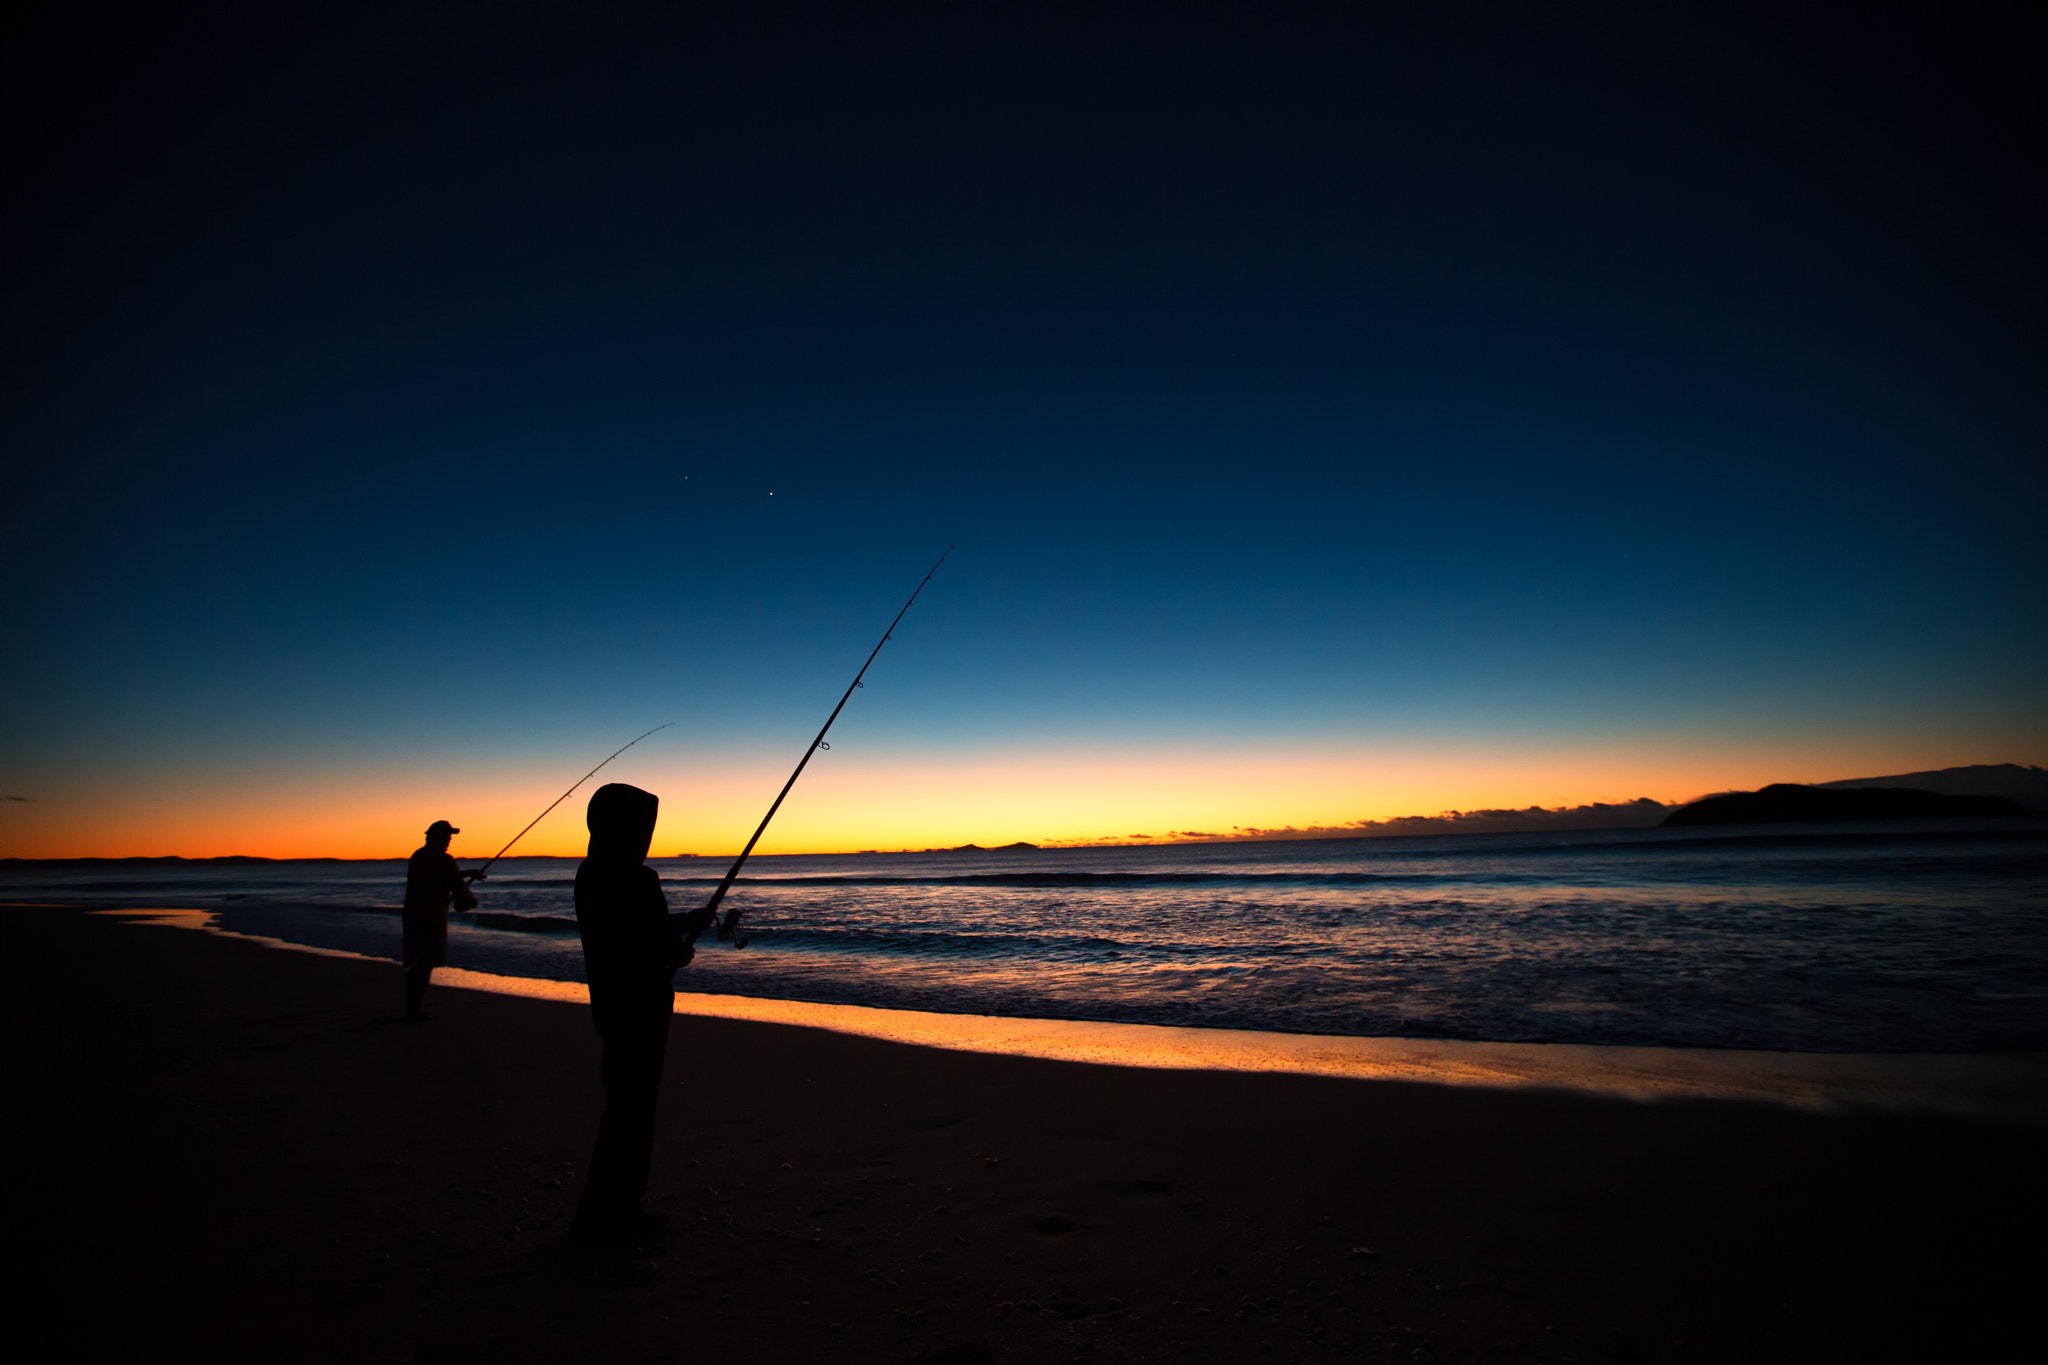 Photograph The Fishermen by Jamie Condon on 500px